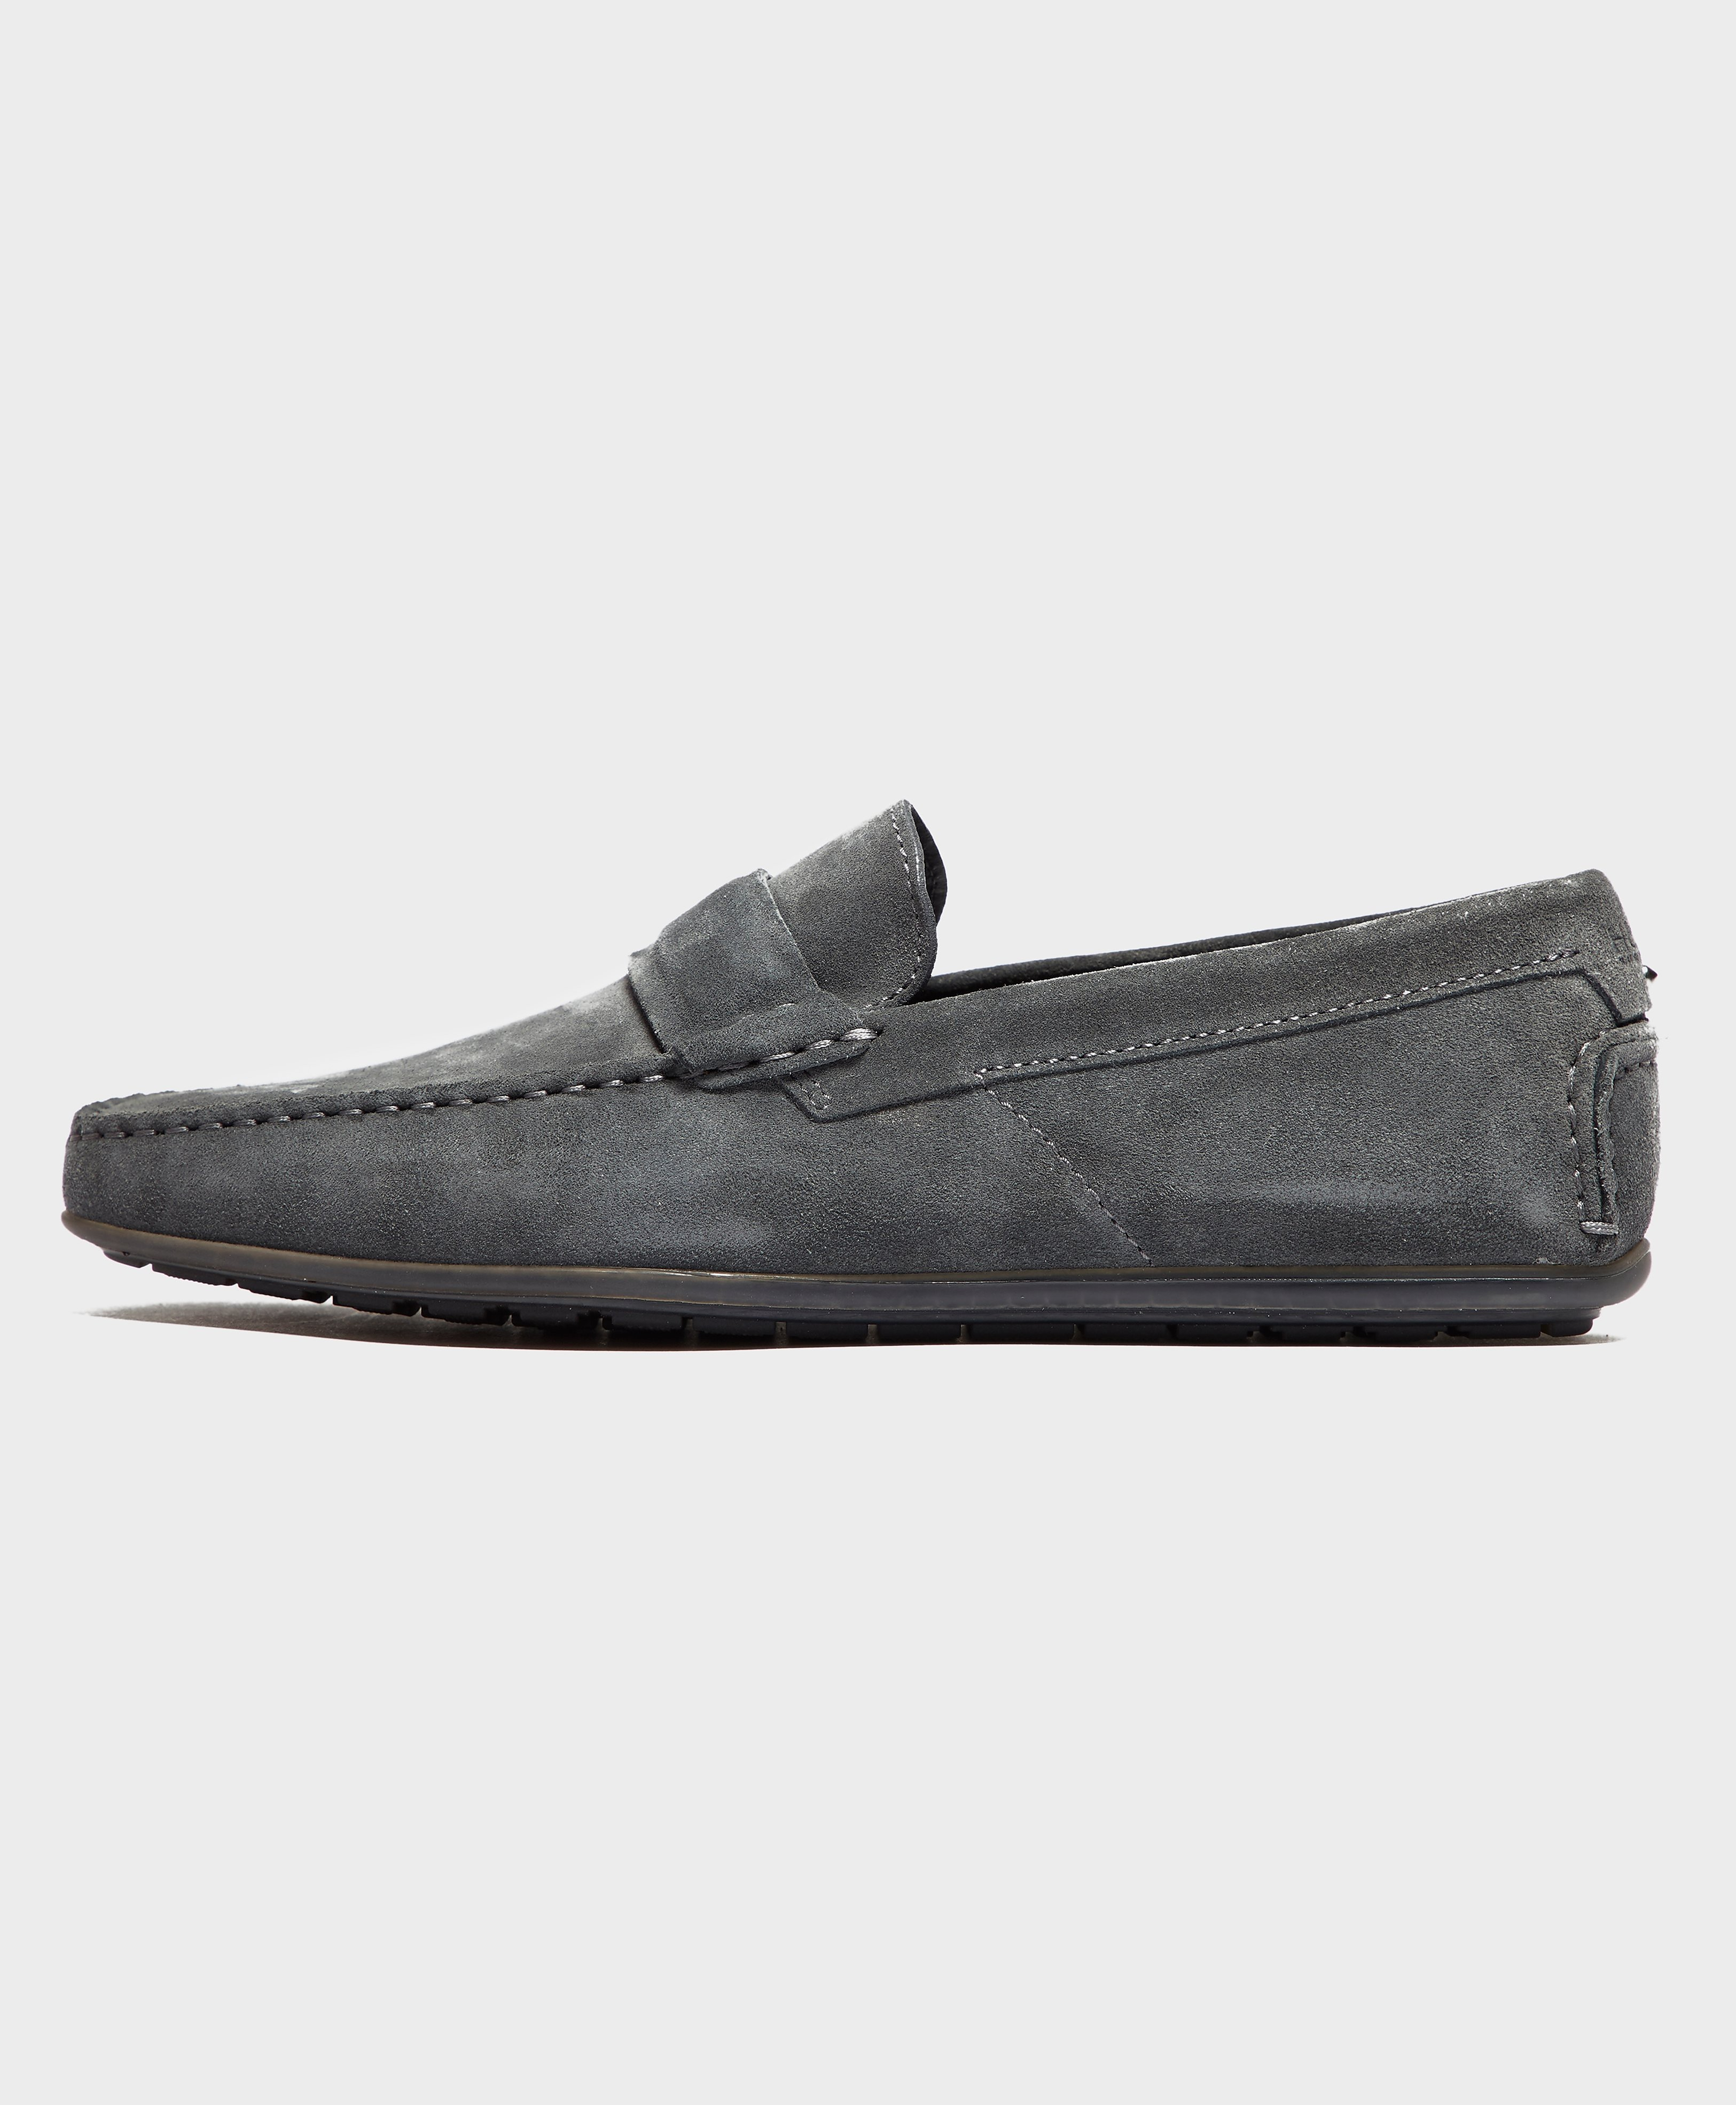 HUGO Dandy Slip-On Shoe